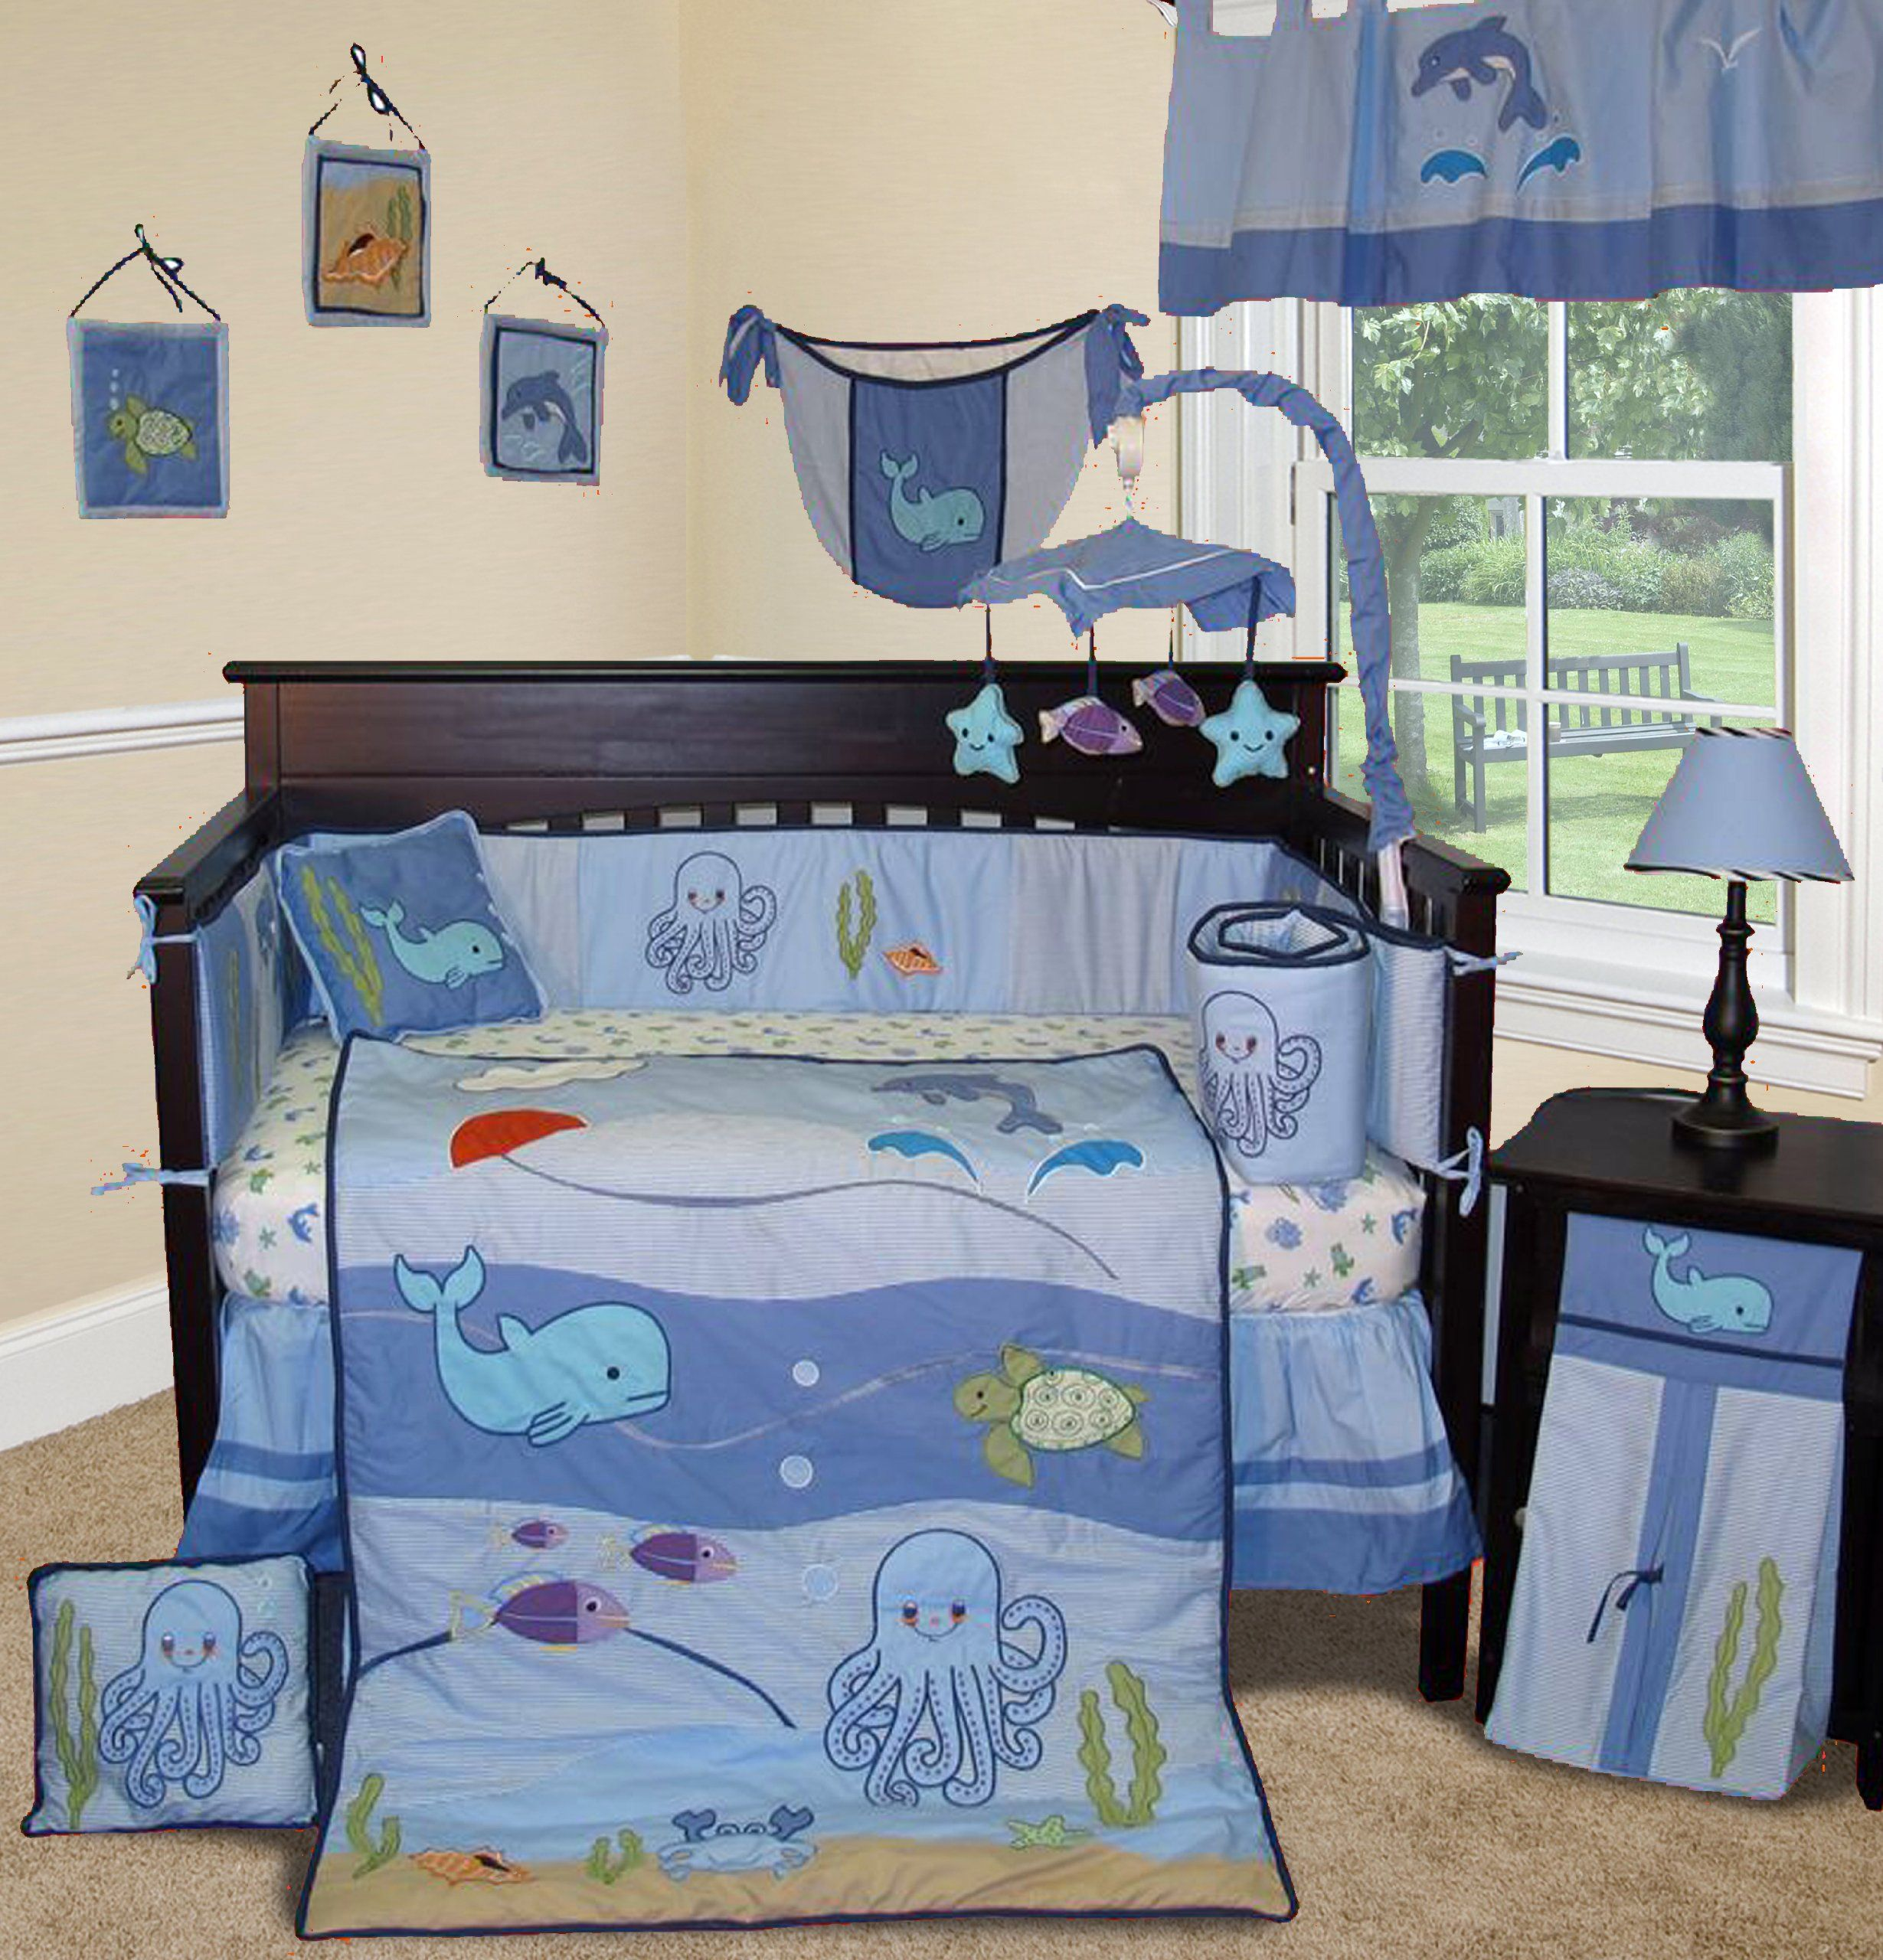 bed houzz hous girls nemo diy master navy boy finding bedroom zag boys with cordial ideas black houses furniture zig rent citron comfy apartments designs sets toddler then set two wa small teal bedrooms carousel decor bedding